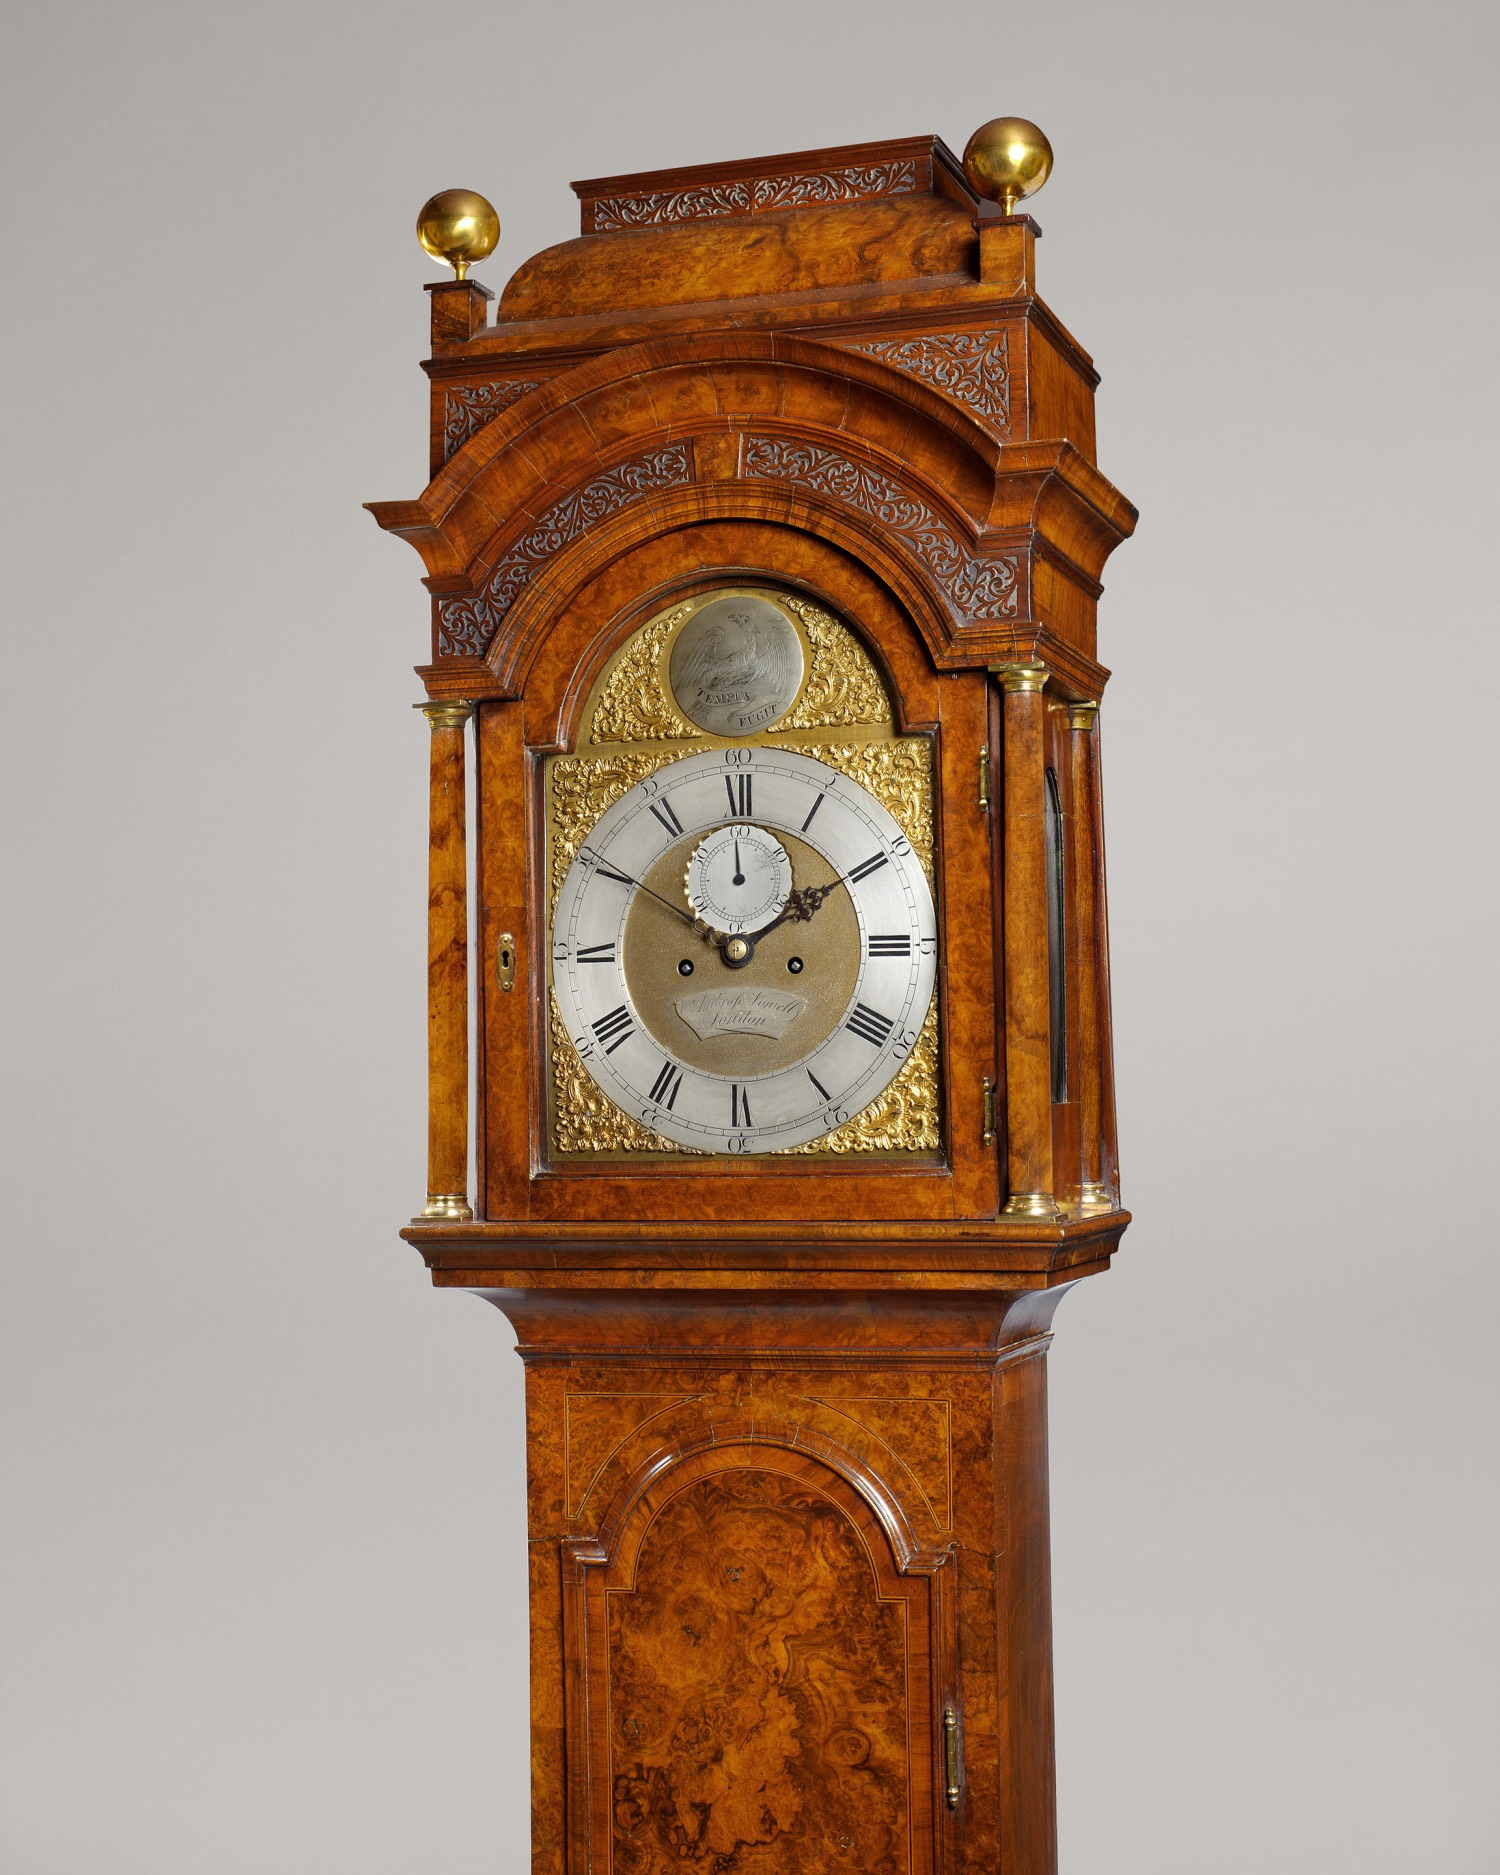 AMBROSE VOWELL. A FINE GEORGE II PERIOD FIGURED WALNUT LONGCASE CLOCK WITH BREAK ARCH DIAL AND ORIGINAL CADDY TOP.